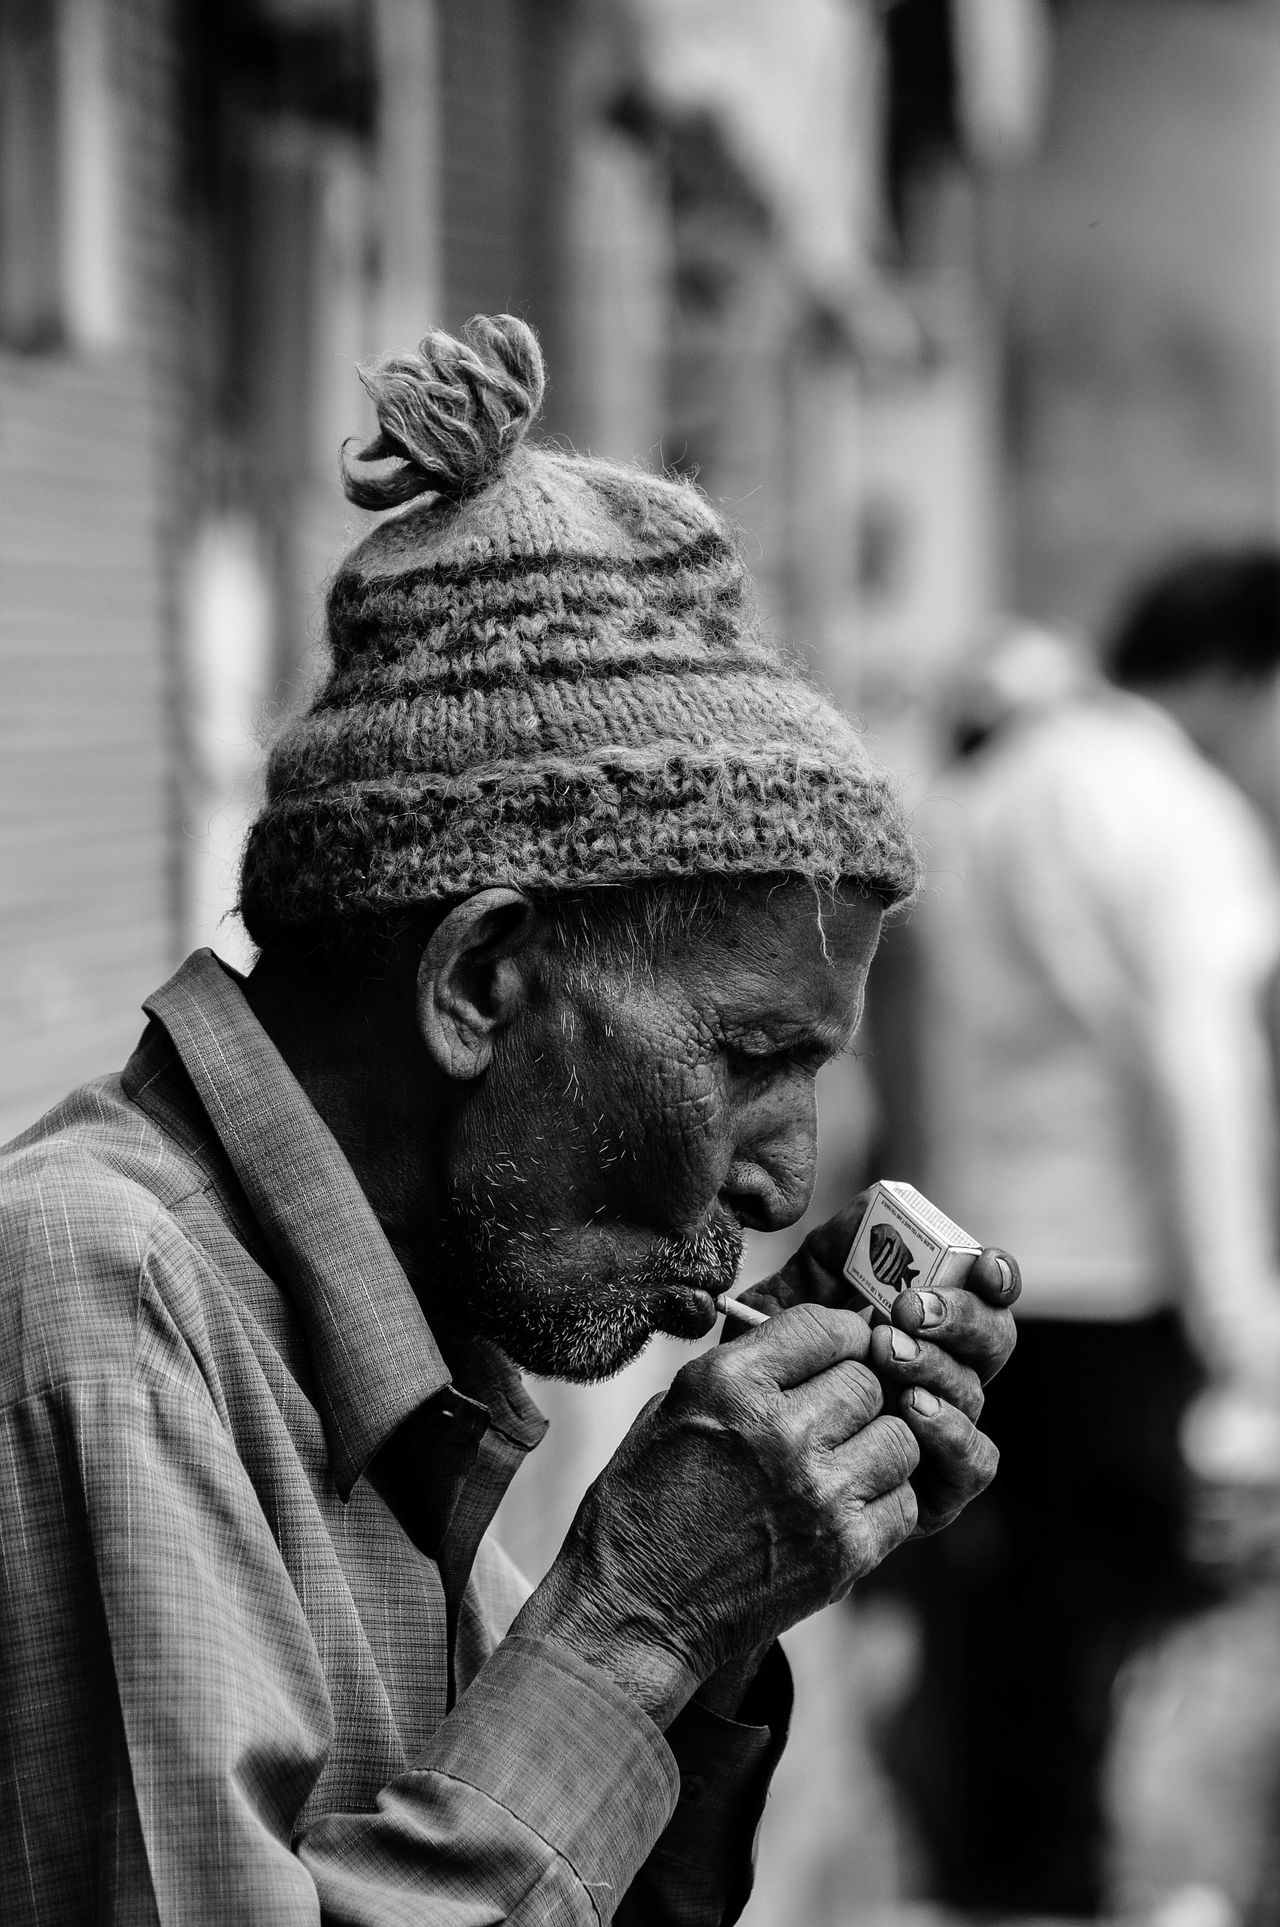 One Person Only Men Human Body Part Real People Men People Headshot Smoke Break Cigarette  Streetphotography Cigarette Time Cigarette Lighter Face